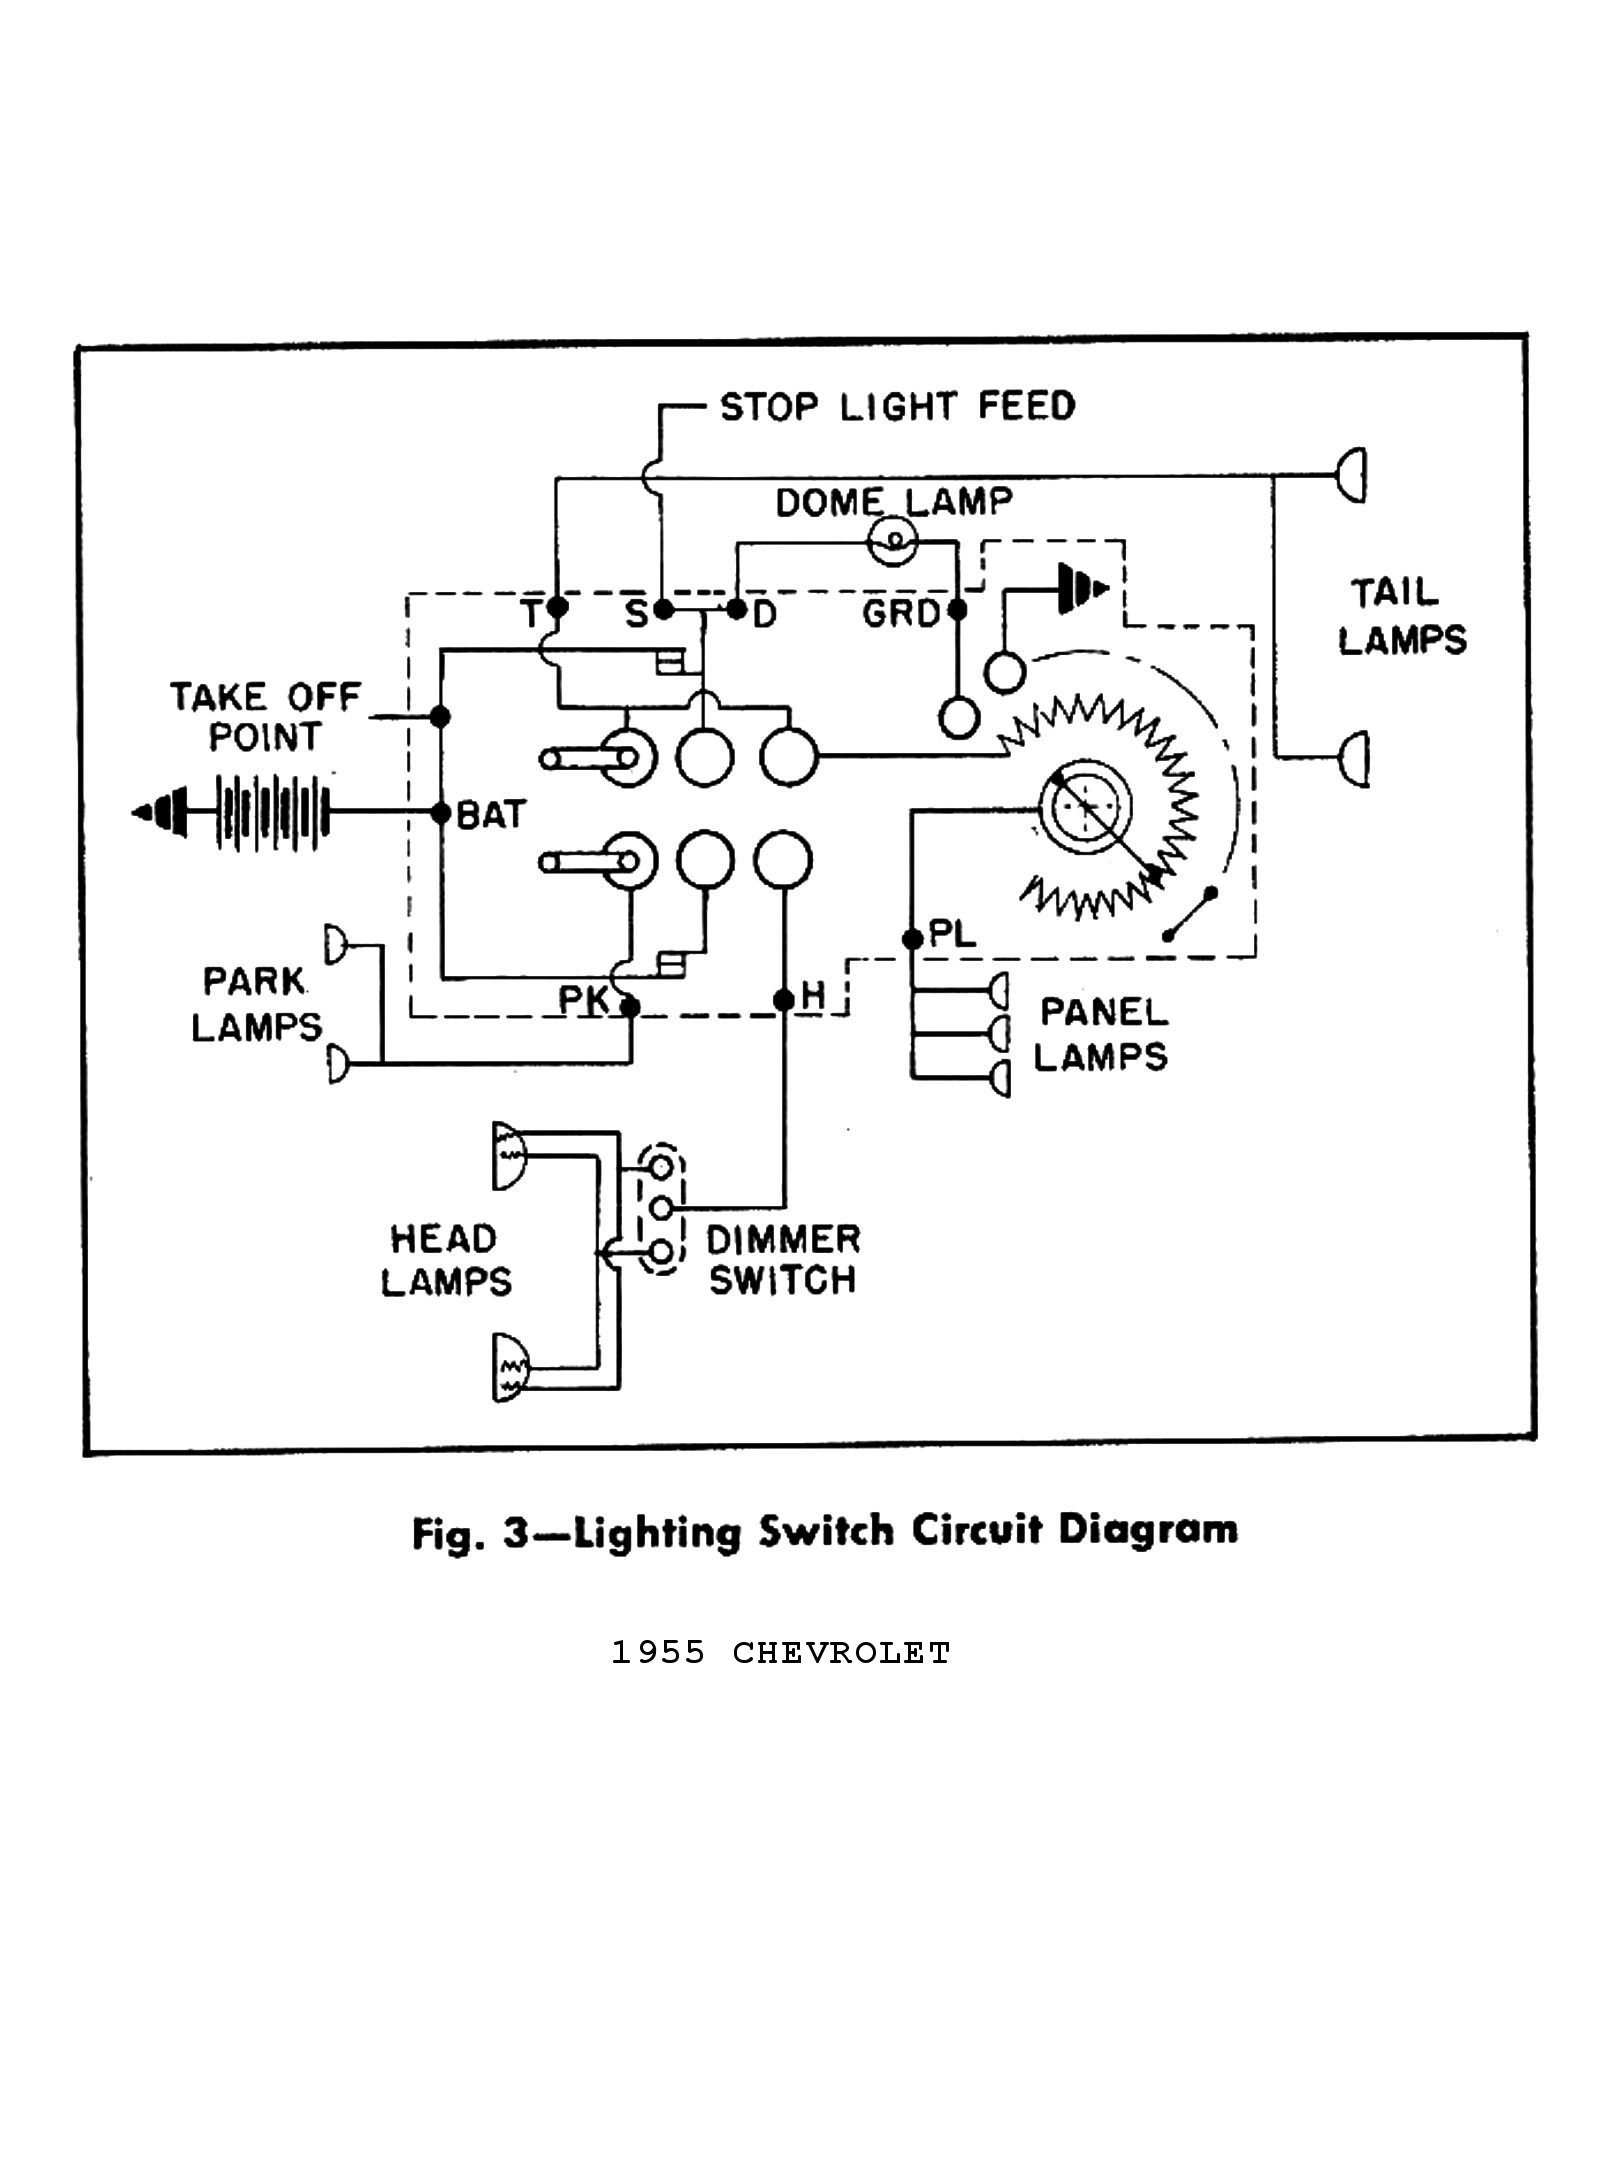 1947 Chevy Headlight Switch Wiring Diagram - Wiring Diagram For 2012 Dodge  Avenger for Wiring Diagram SchematicsWiring Diagram Schematics